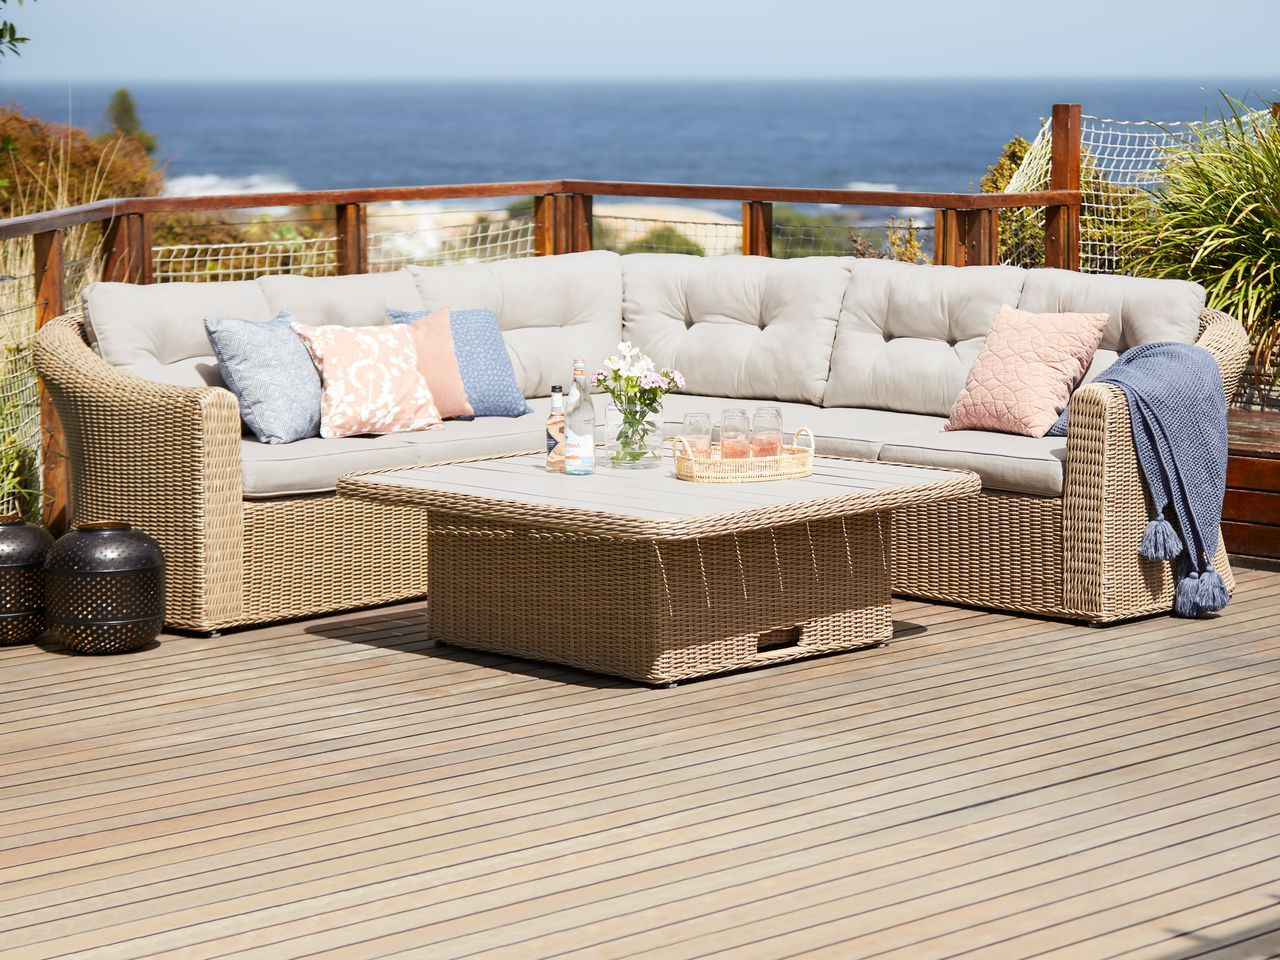 Pin By Chi Max On Haven Outdoor Furniture Sets Outdoor Sectional Sofa Outdoor Furniture